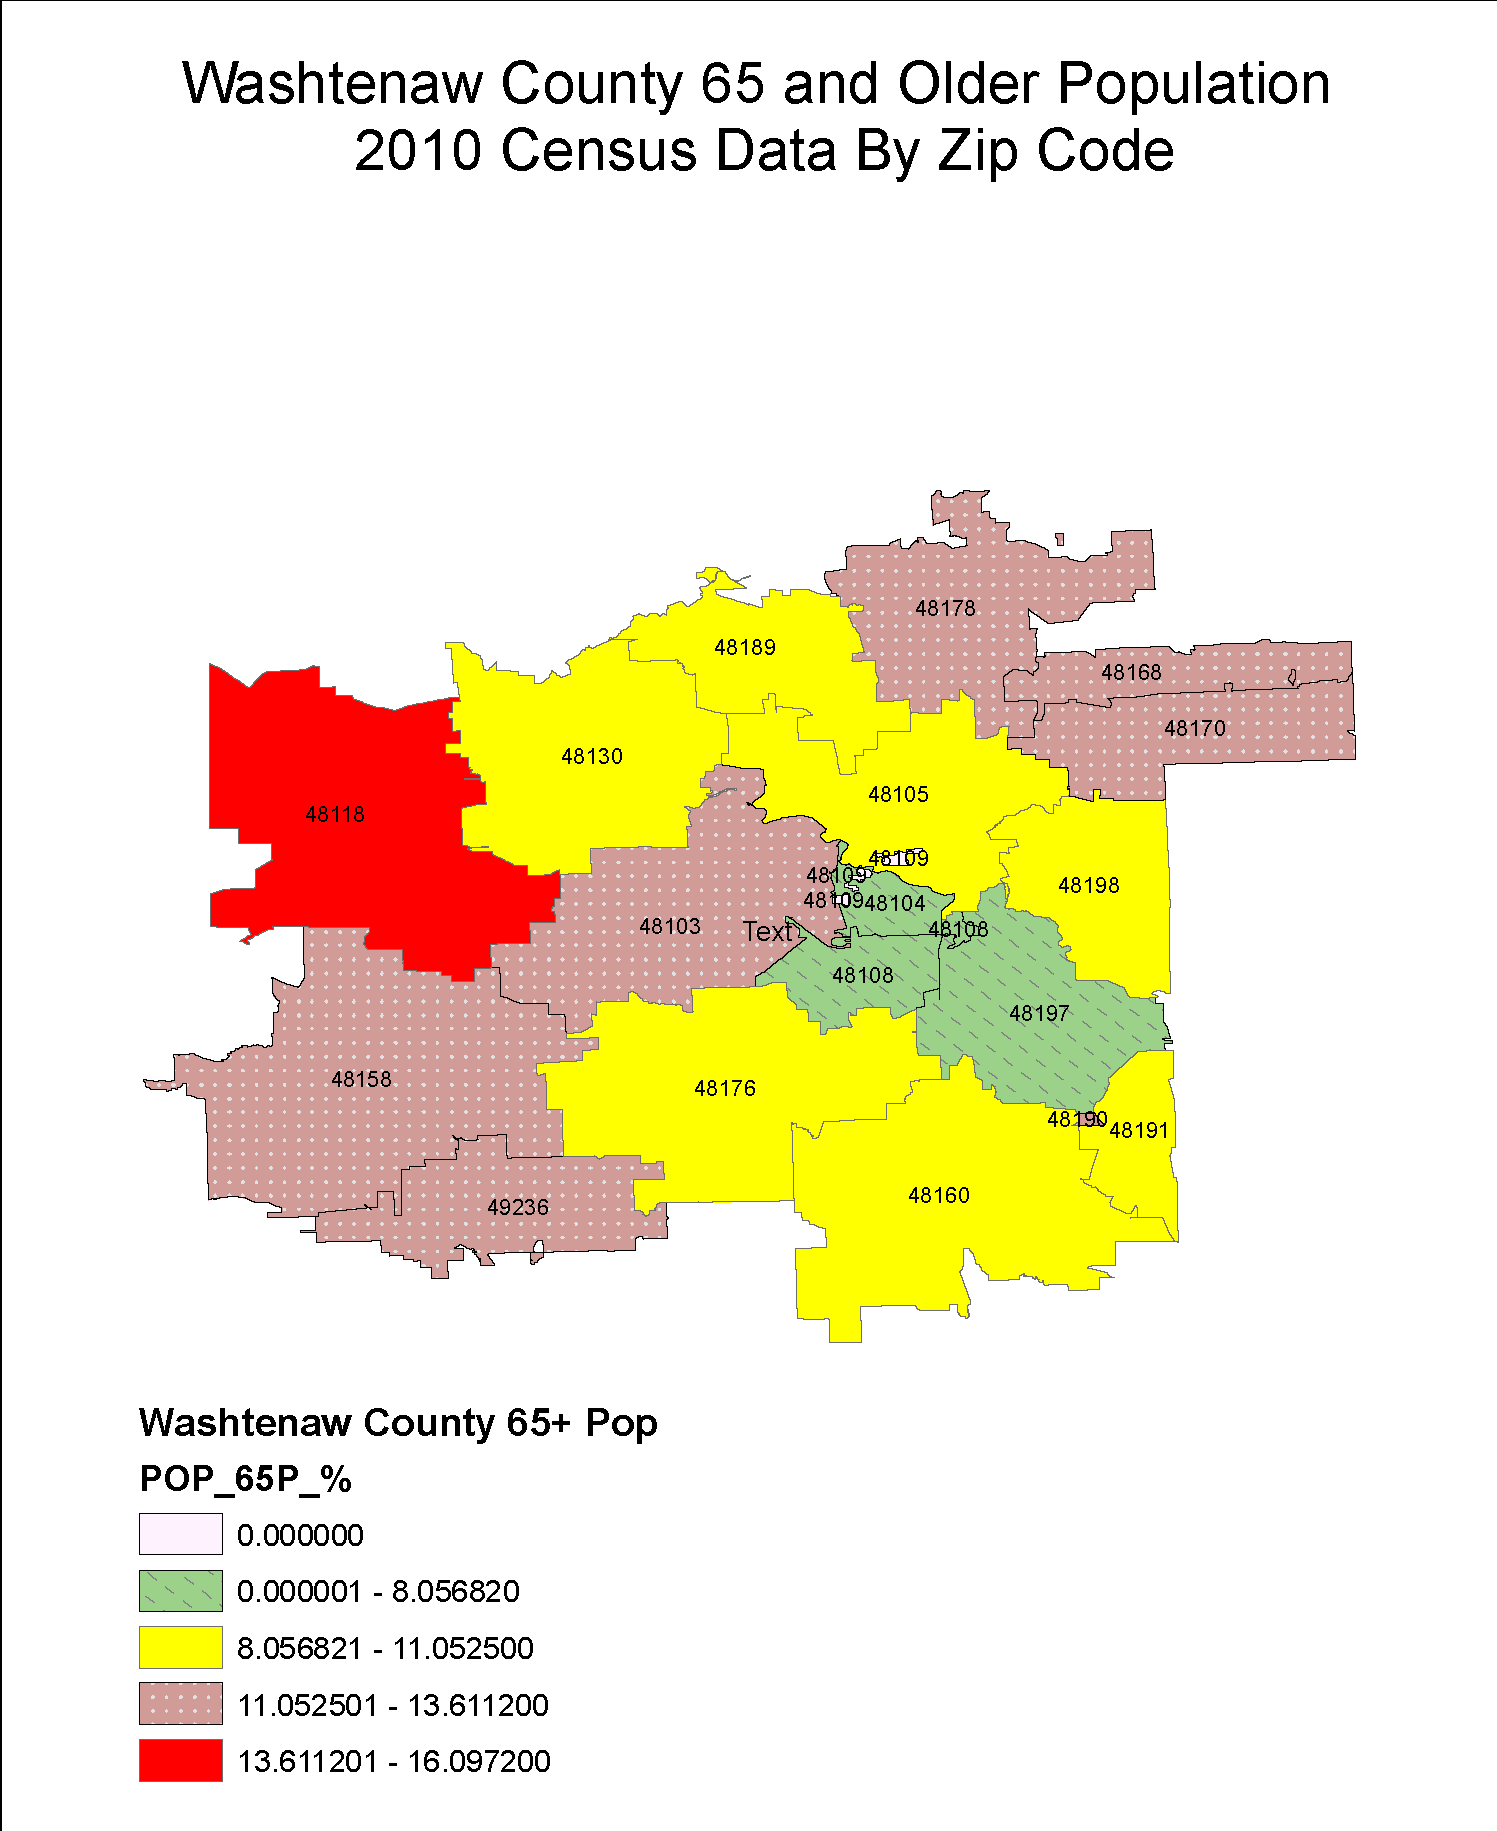 Washtenaw County 65 and Older Population by Zip Code